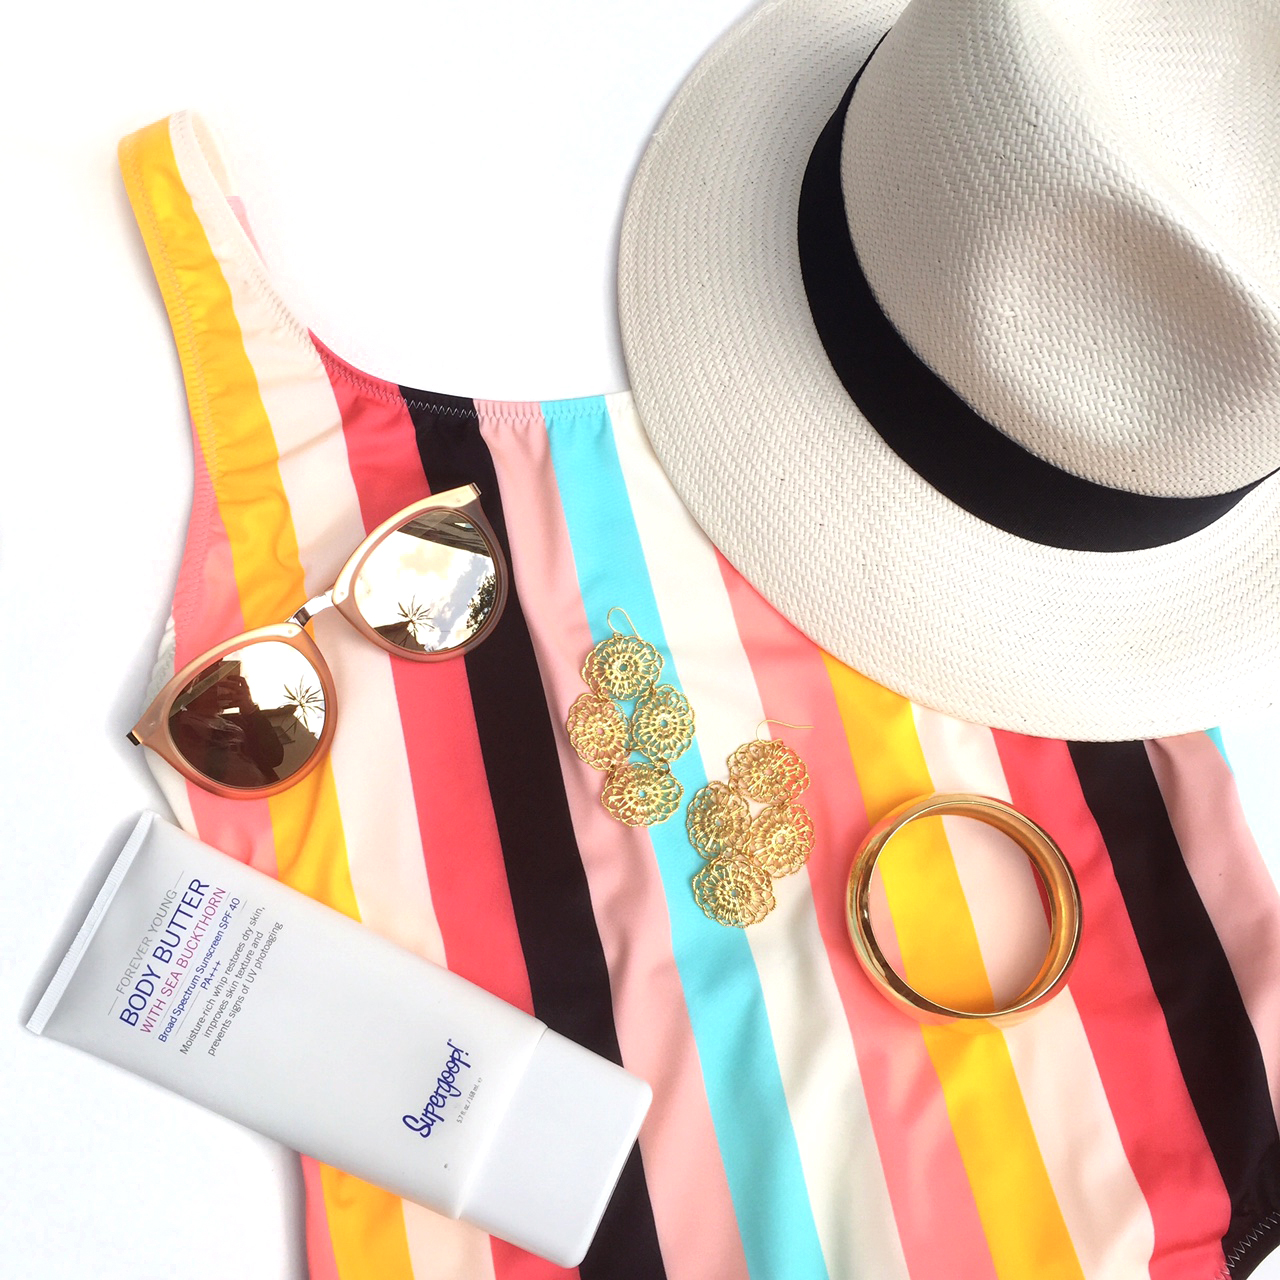 Supergoop Body Butter ,  Janna Conner Lace Filigree Earrings  ,   Janna Conner Dome Bangle ,  Le Specs sunglasses ,  Scala Panama Hat  and  Solid & Striped Bathing Suit.